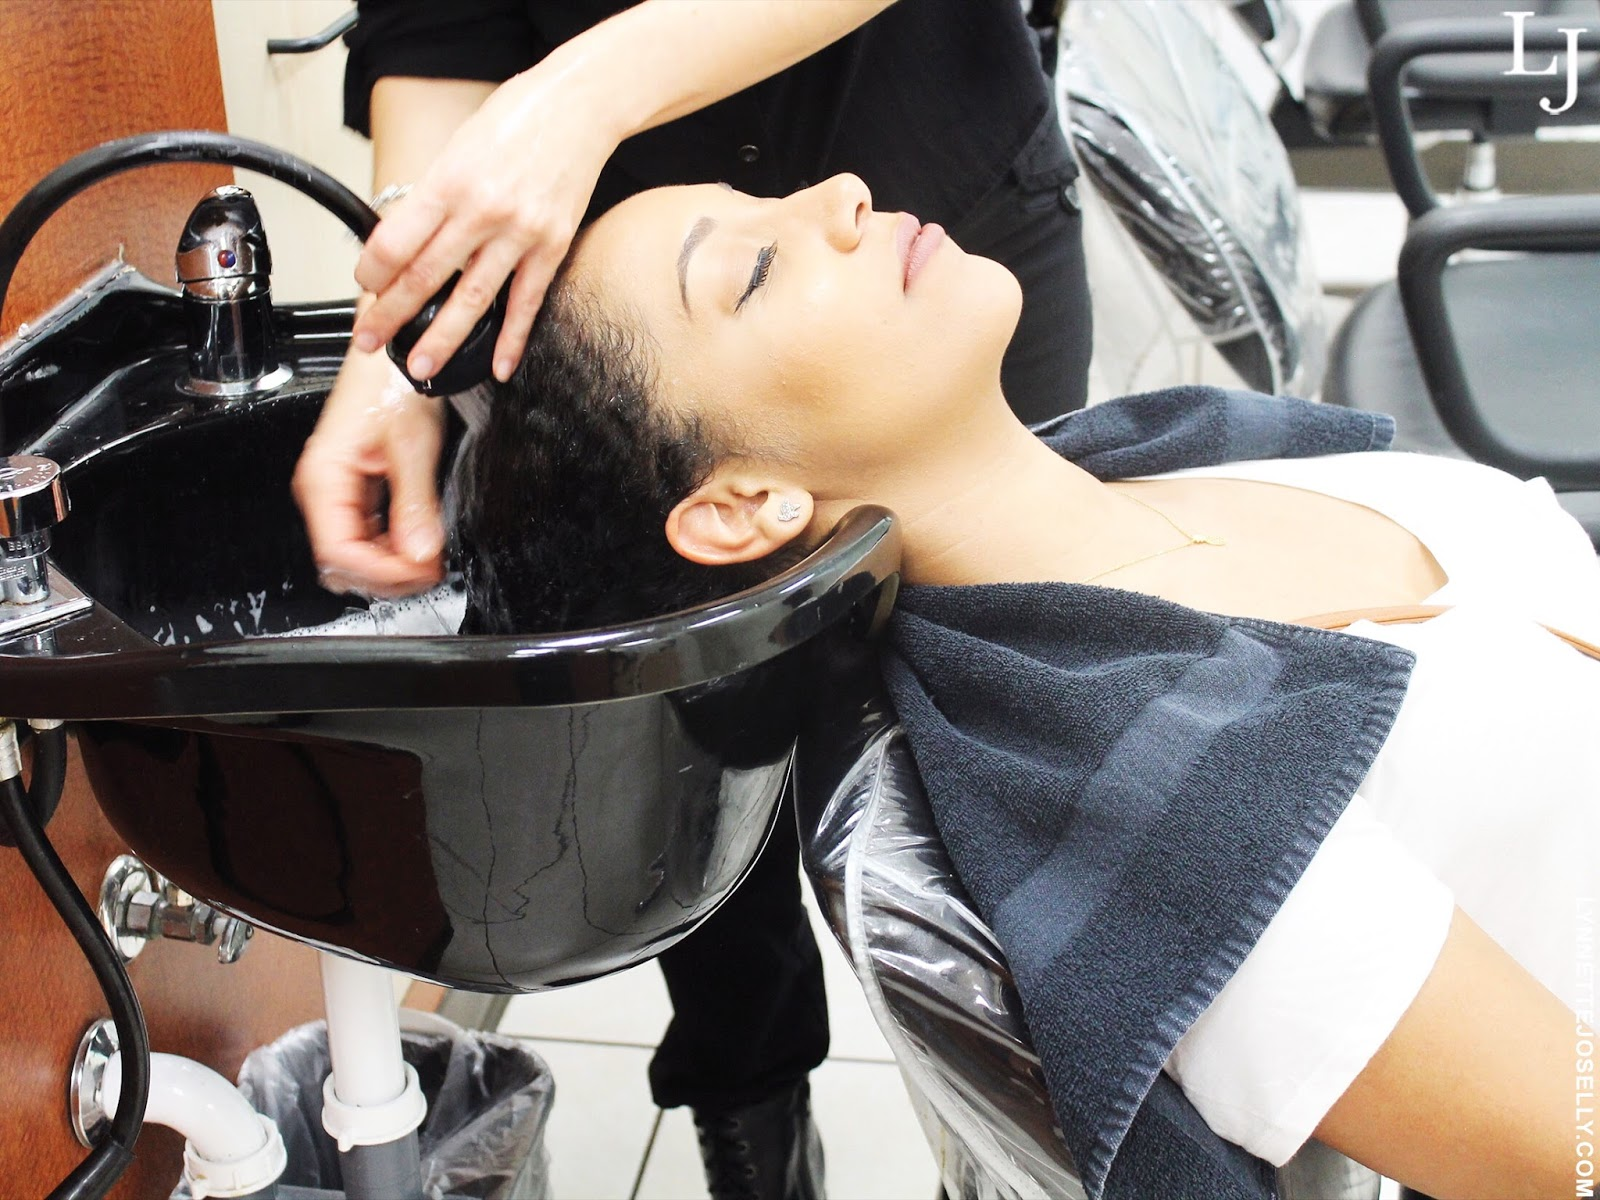 haircuttery-wash-hair-salon